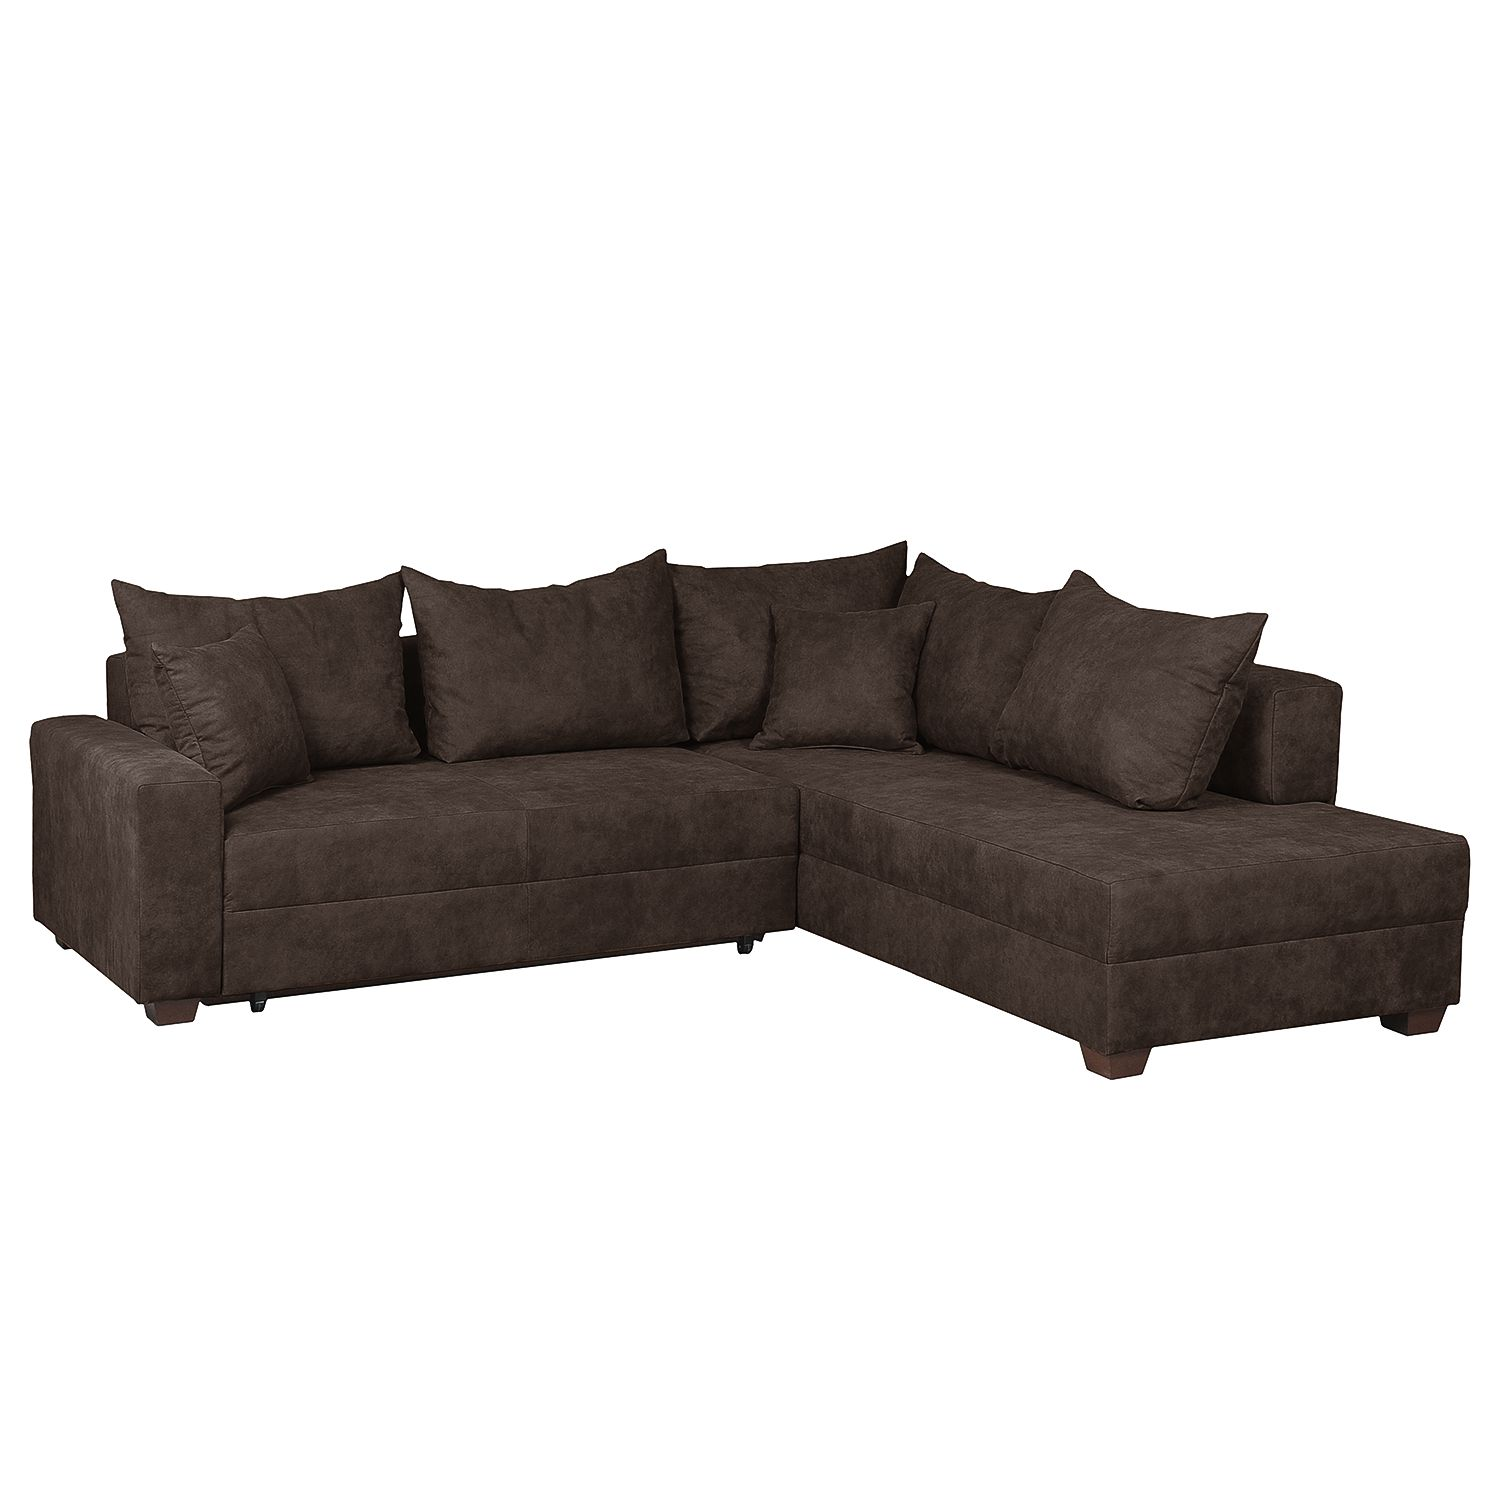 ecksofa mit schlaffunktion neckermann inspirierendes design f r wohnm bel. Black Bedroom Furniture Sets. Home Design Ideas